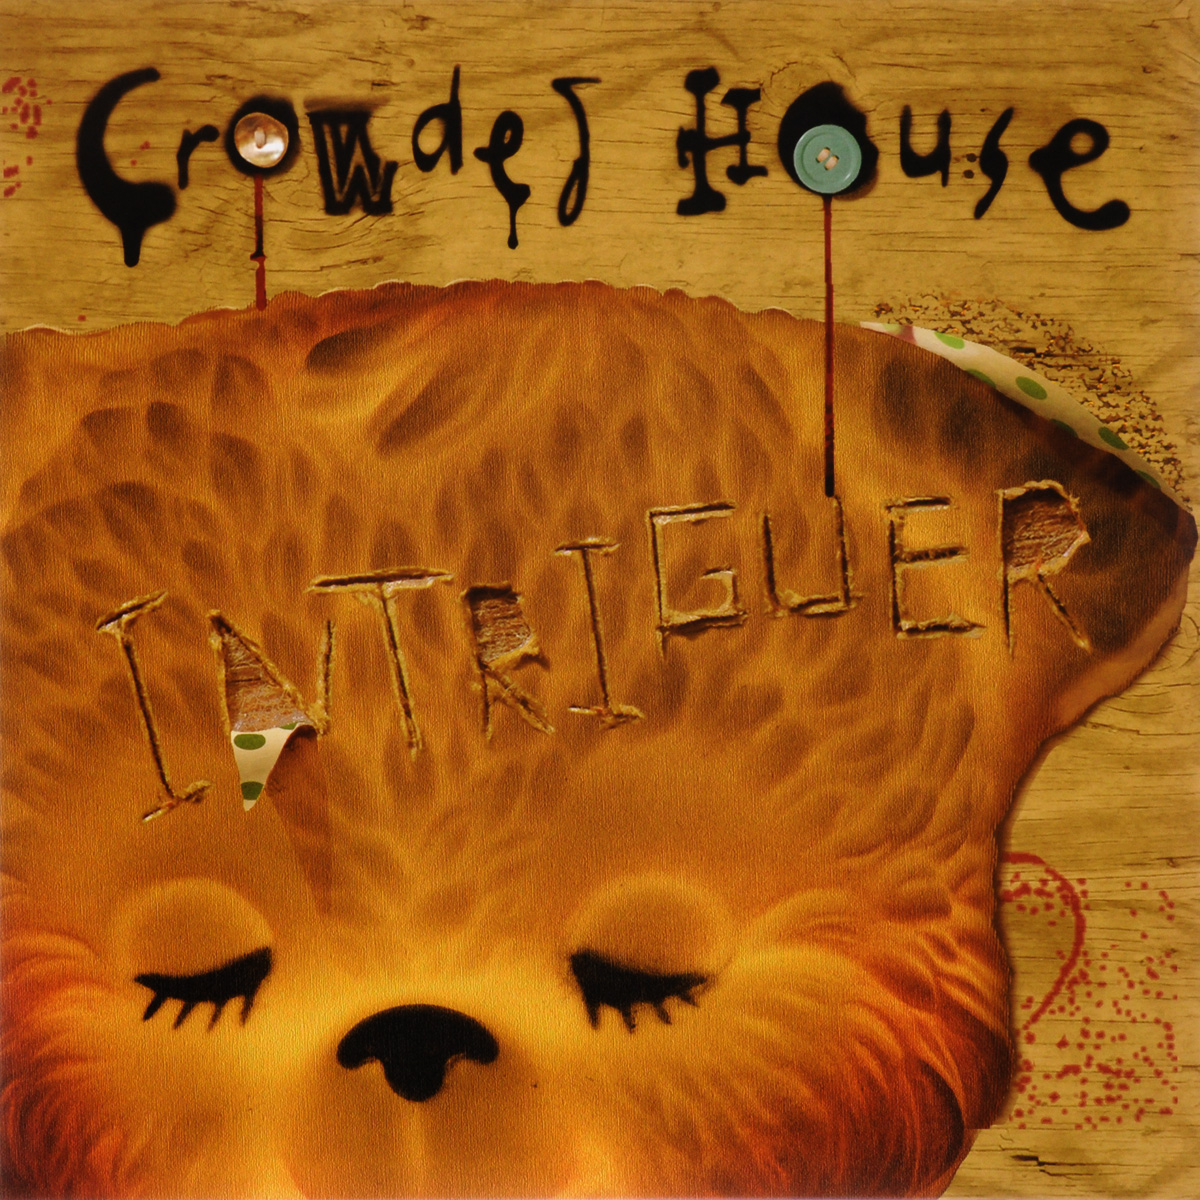 Crowded House Crowded House. Intriguer (LP) crowded house crowded house intriguer lp